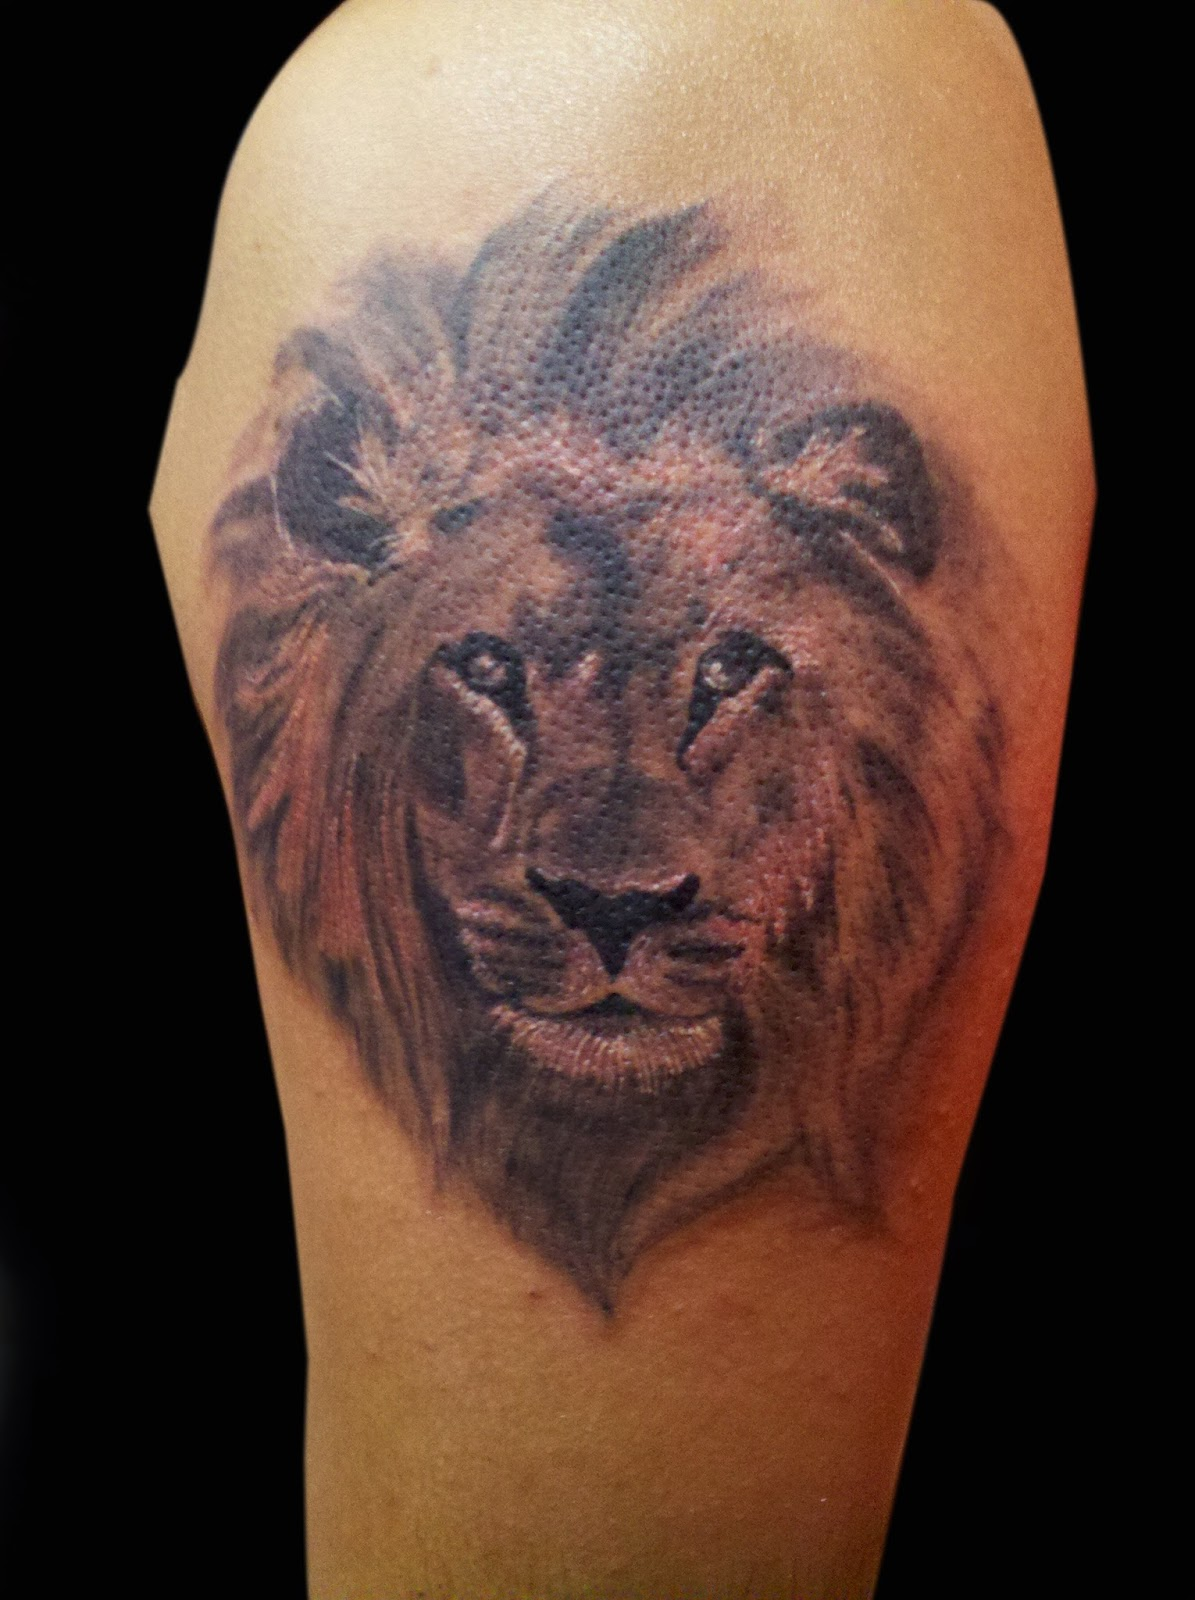 Best Tattoos Ever Done For Women Lion tattoo leo tattoo tattoos